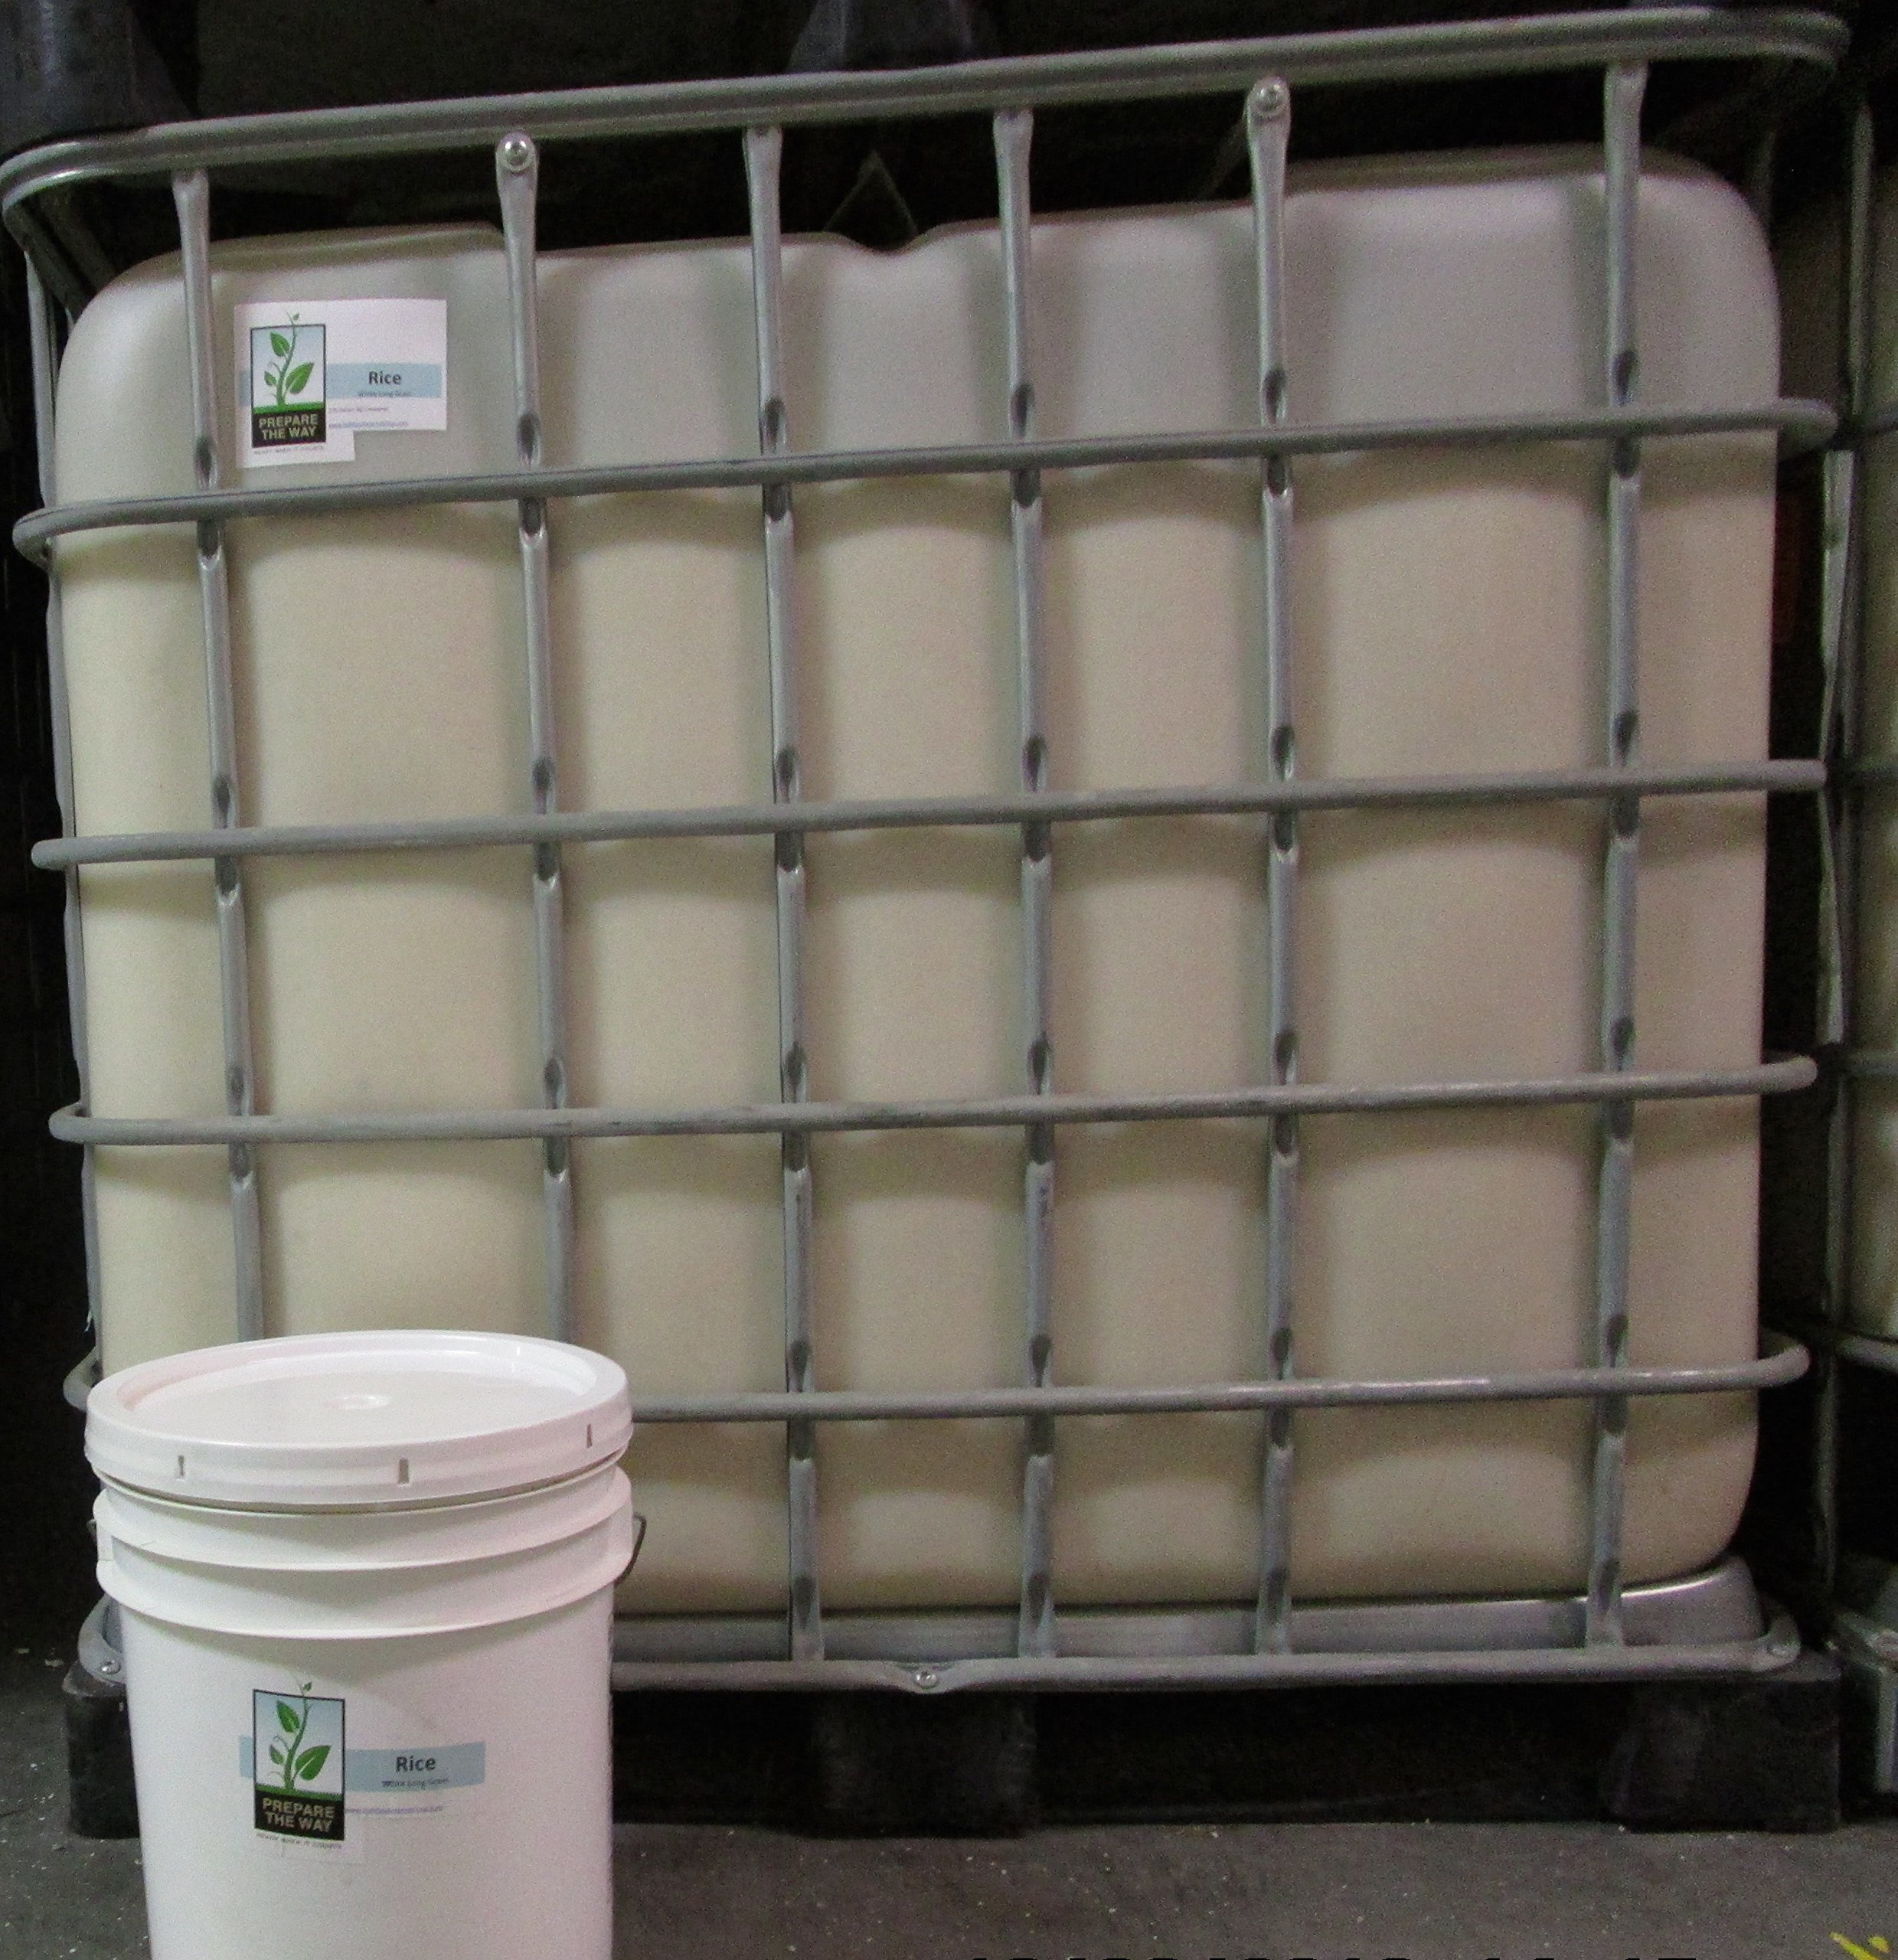 Rice - White Long Grain Non-gmo, Gluten Free - Kept in 275 Gallon IBC Containers for Emergency Storage, Preparedness (Prepper), Bulk Food Survival, Investment & Disaster Solutions